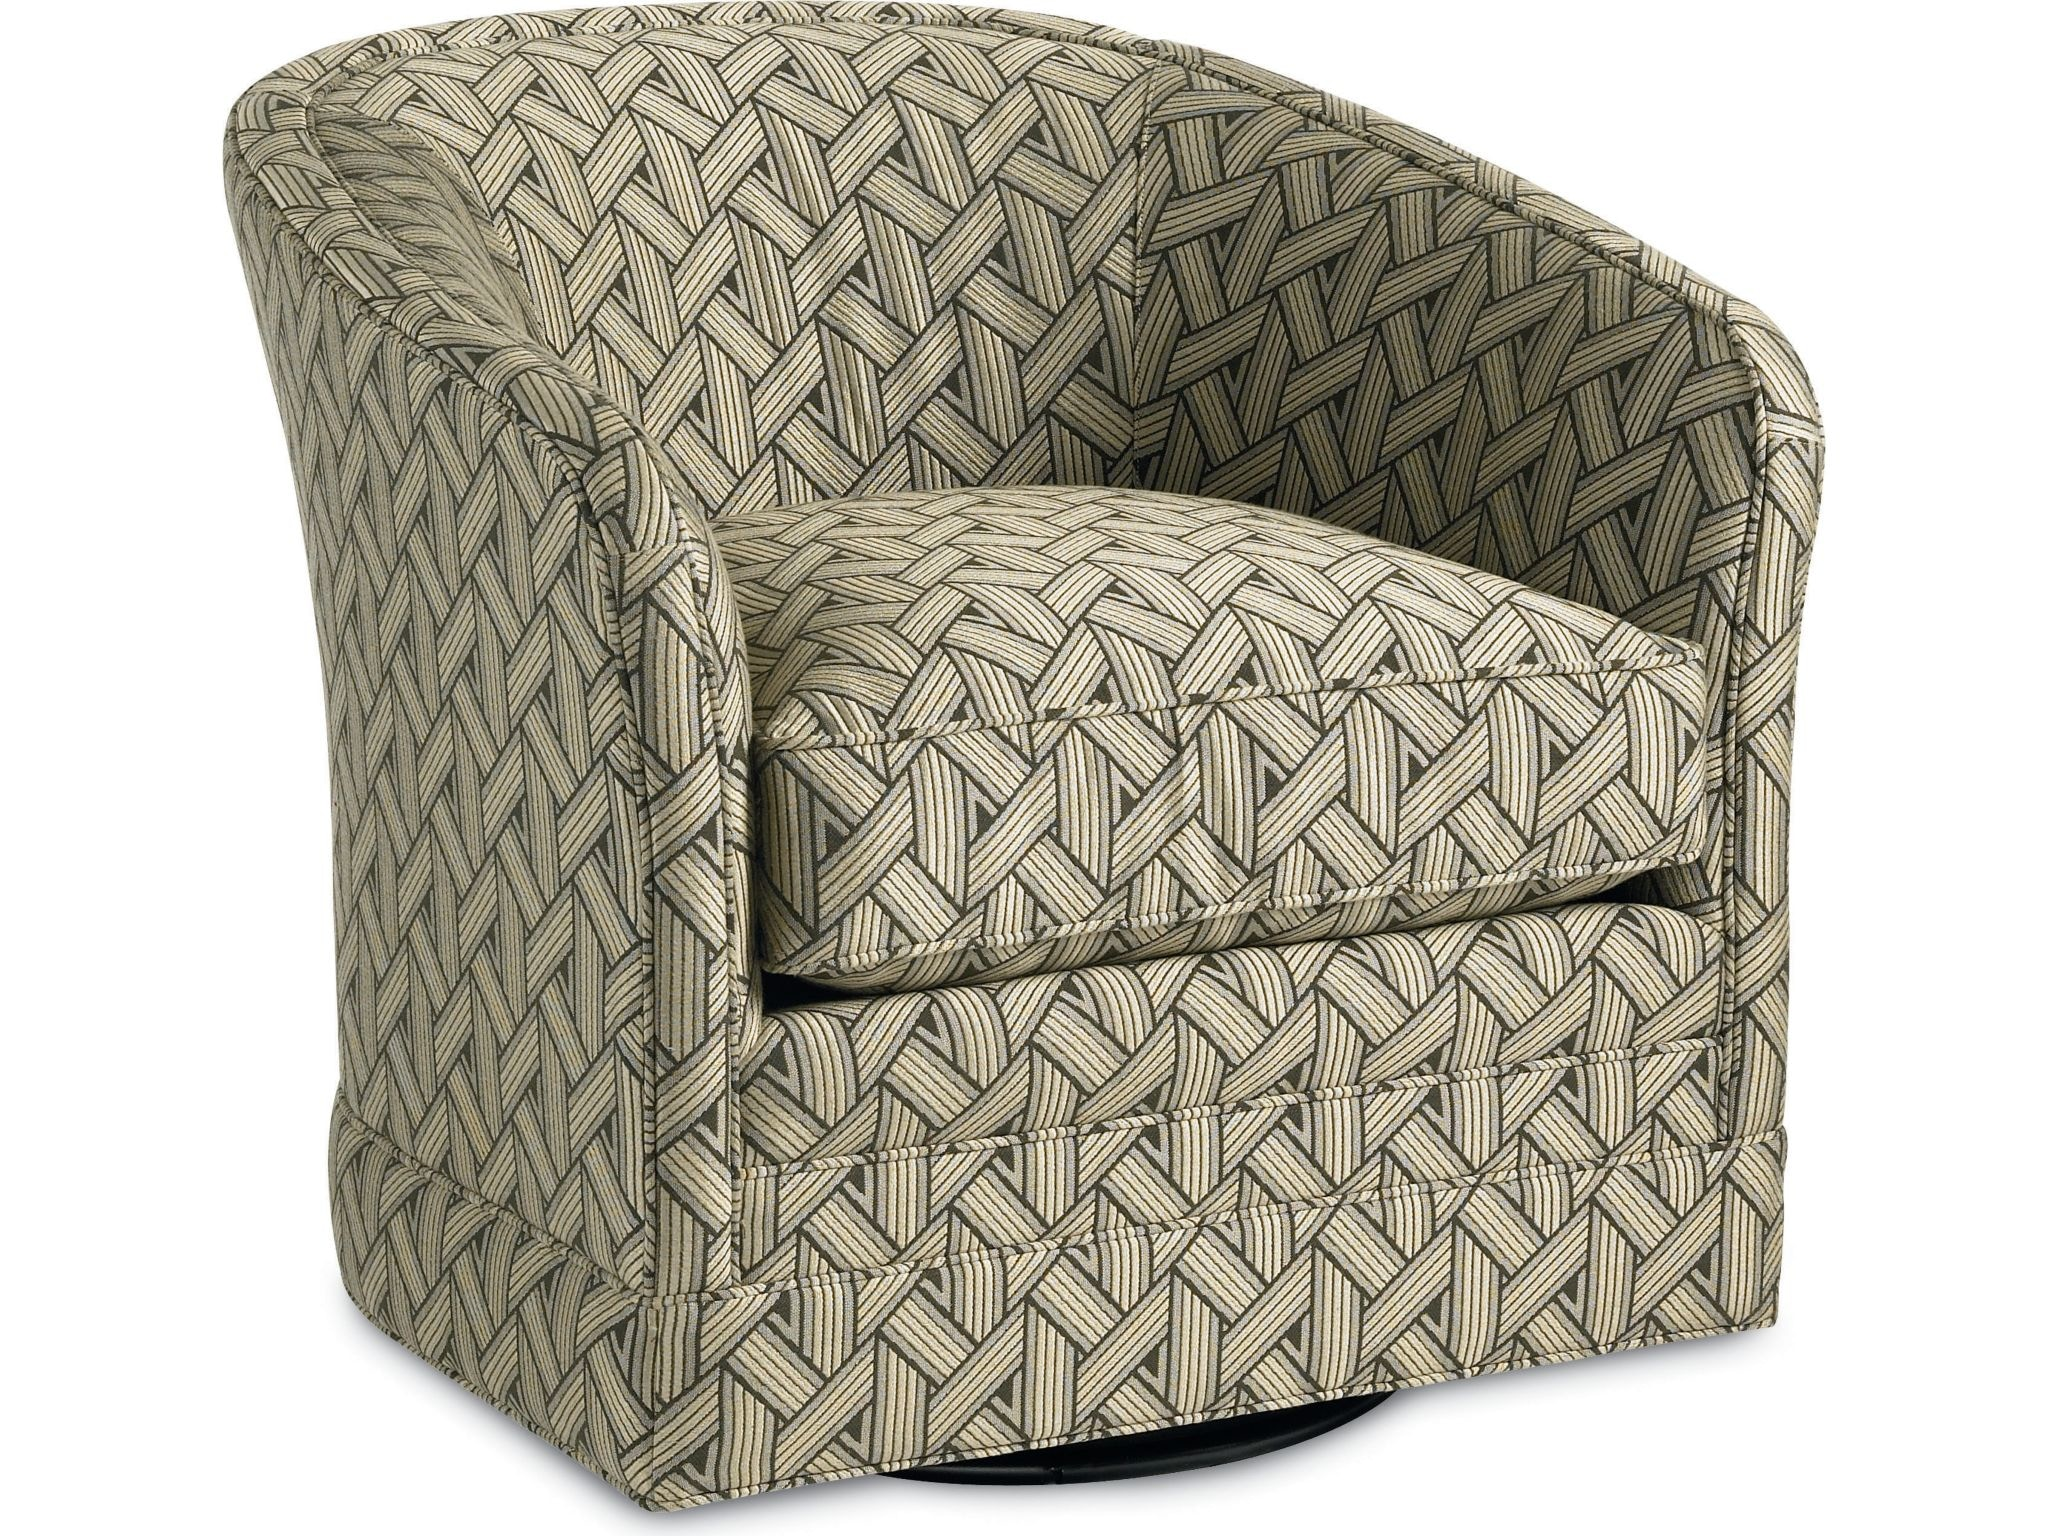 Thomasville Sutton Swivel Glider Chair 1564 15SG